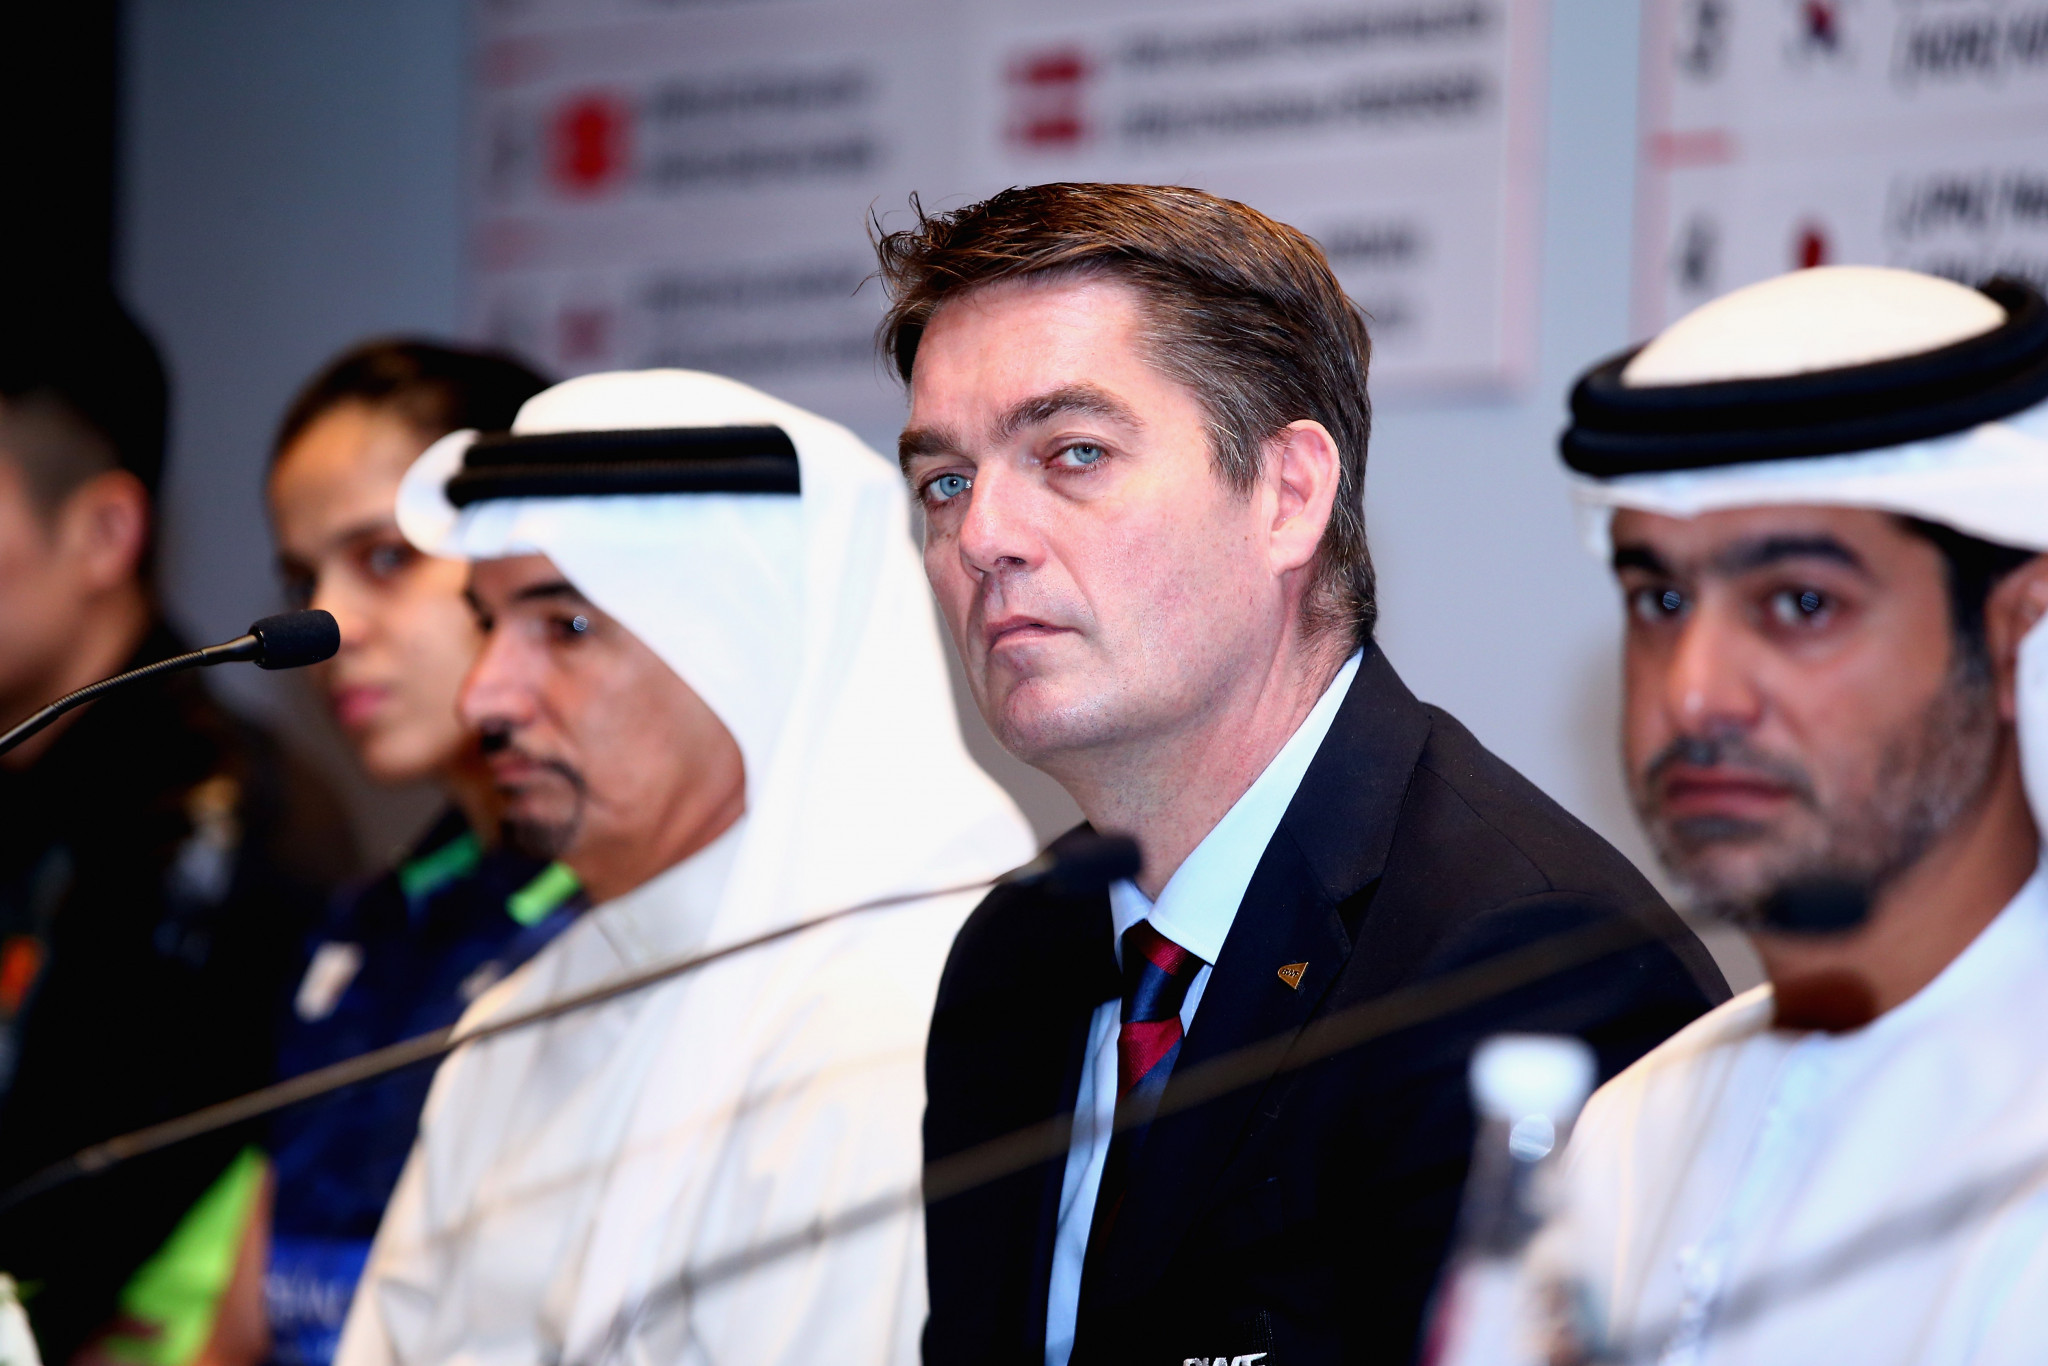 BWF President Poul-Erik Høyer said he had full trust in the officials elected at the BWF Annual General Assembly in Nanning ©Getty Images